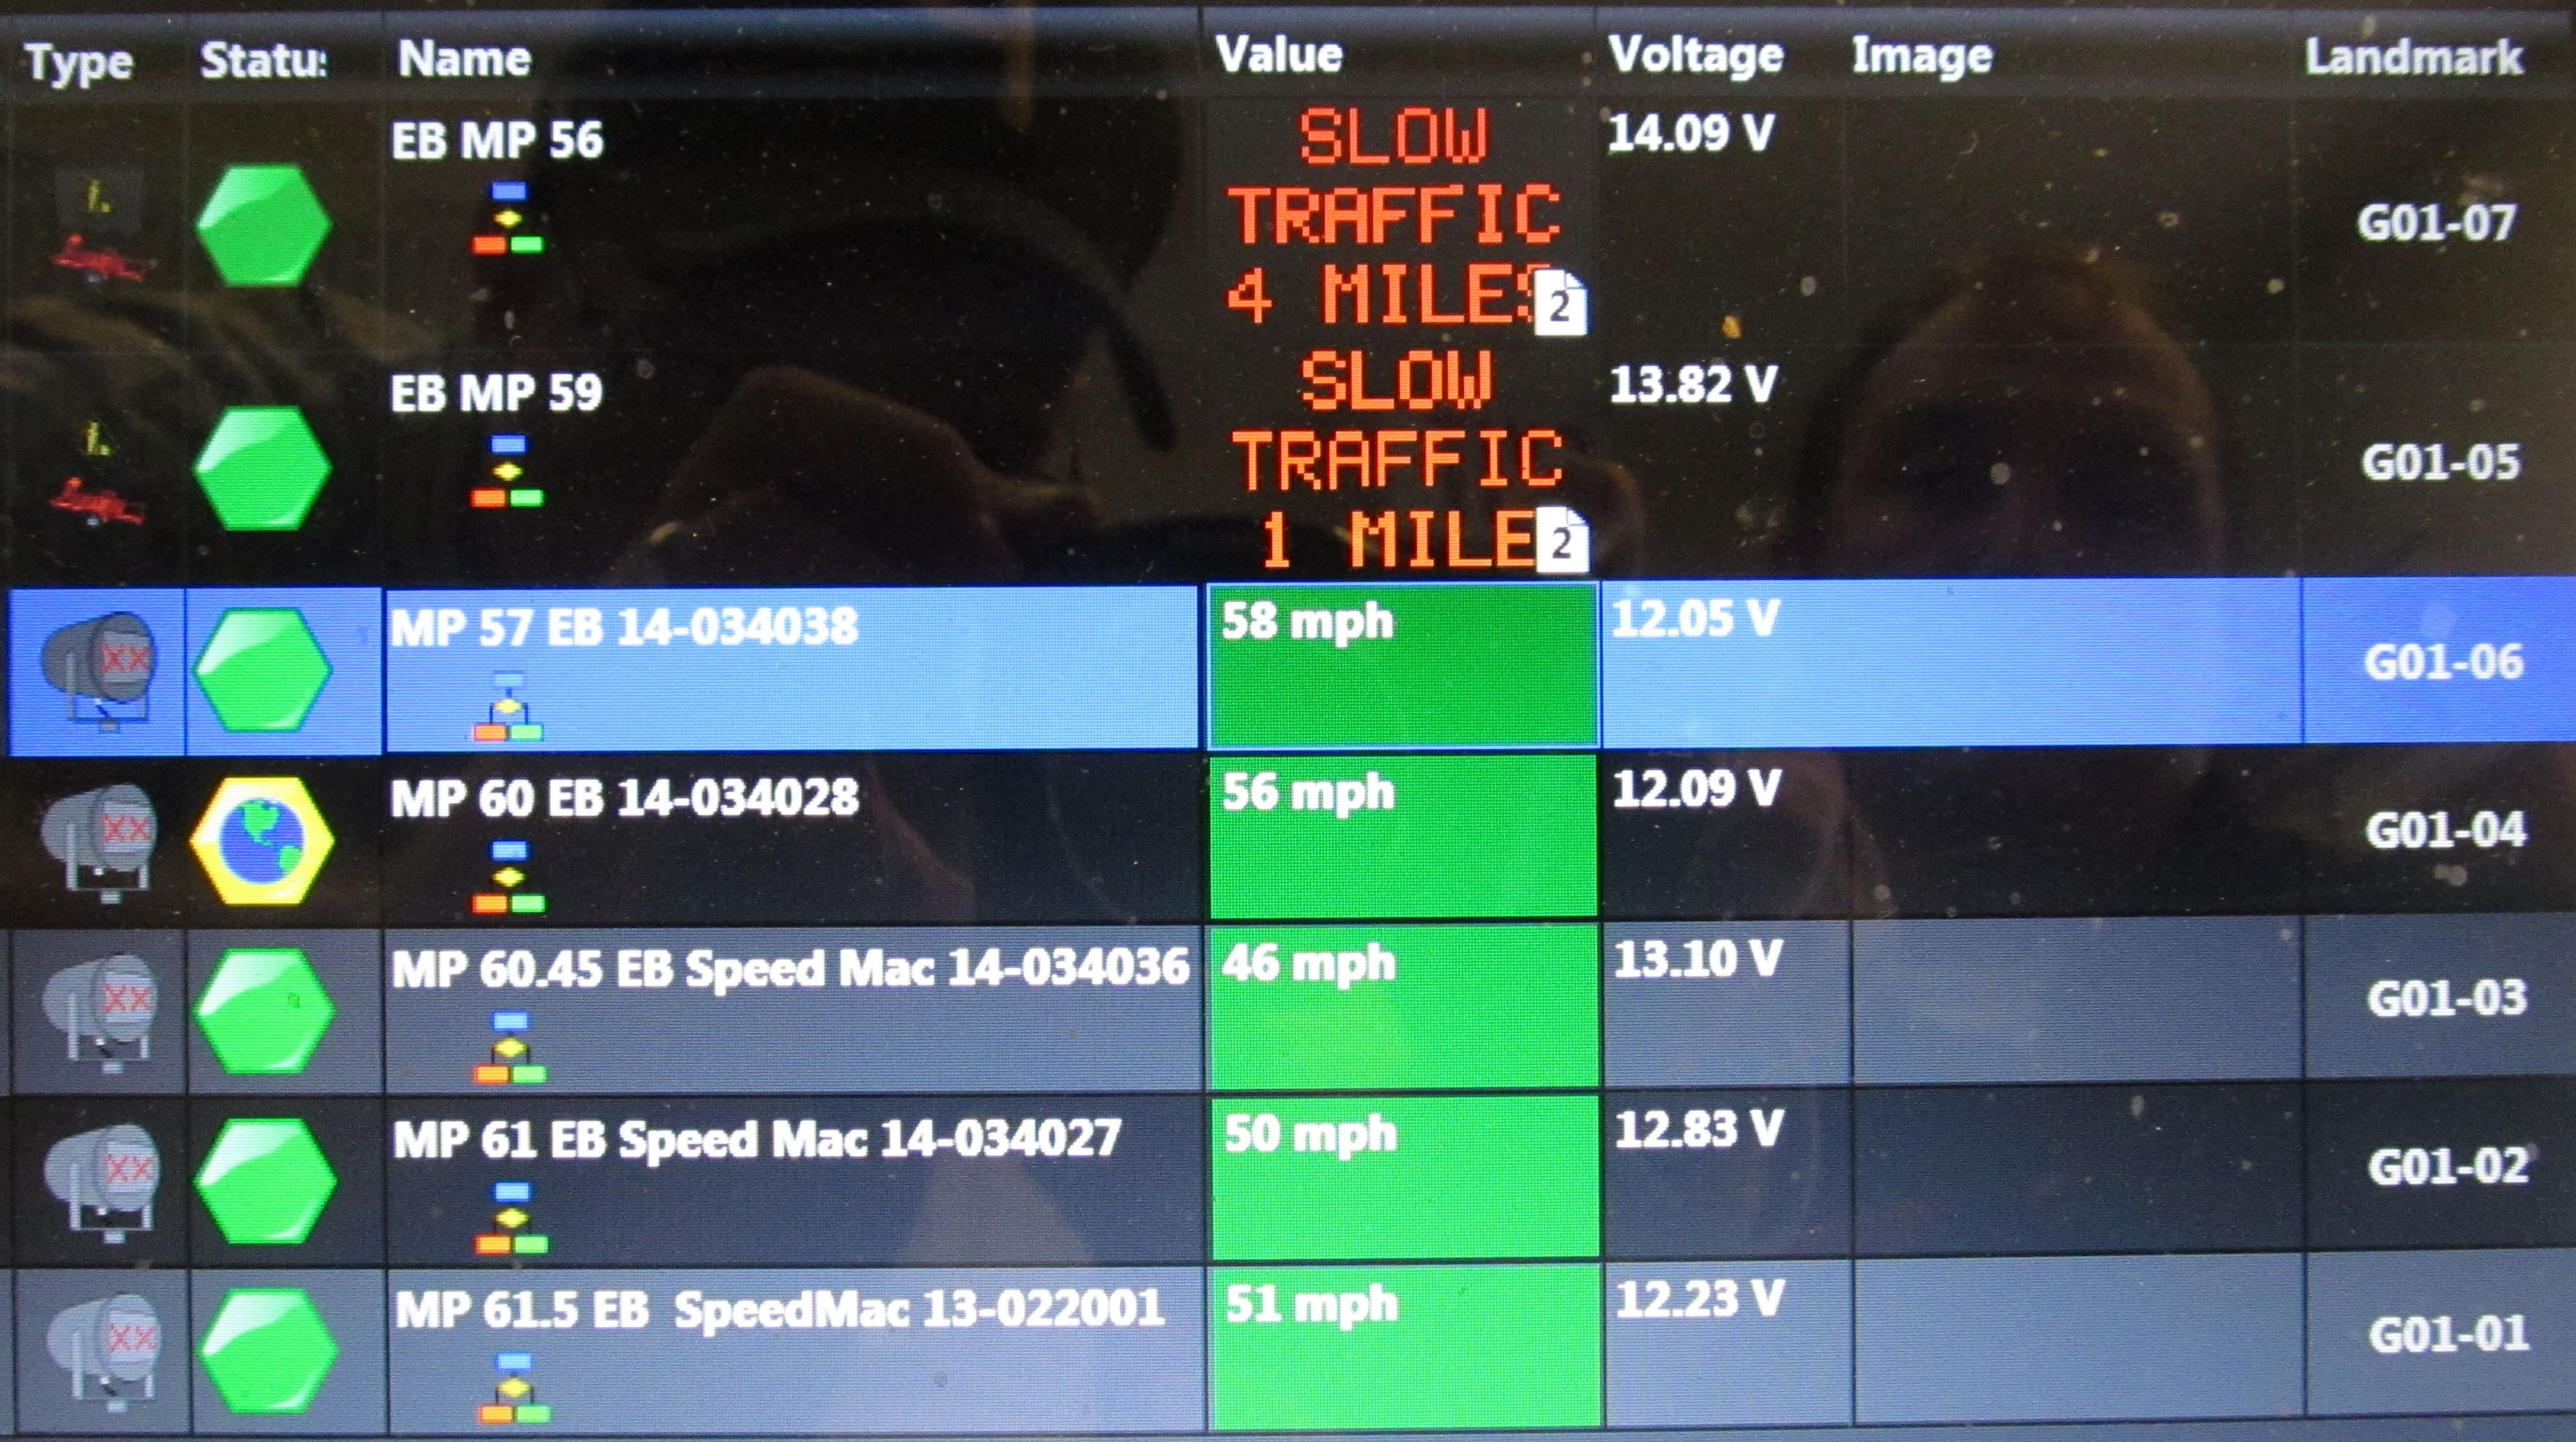 The information from traffic speed sensors in the AQW system sends information to PennDOT officials, which is displayed on their computers. When traffic slows or is stopped, LED signs will display messages like those near the top, indicating about how far away the traffic delay exists. When traffic is flowing faster, PennDOT officials can still see its average speed, indicated in the green bars below the signs.